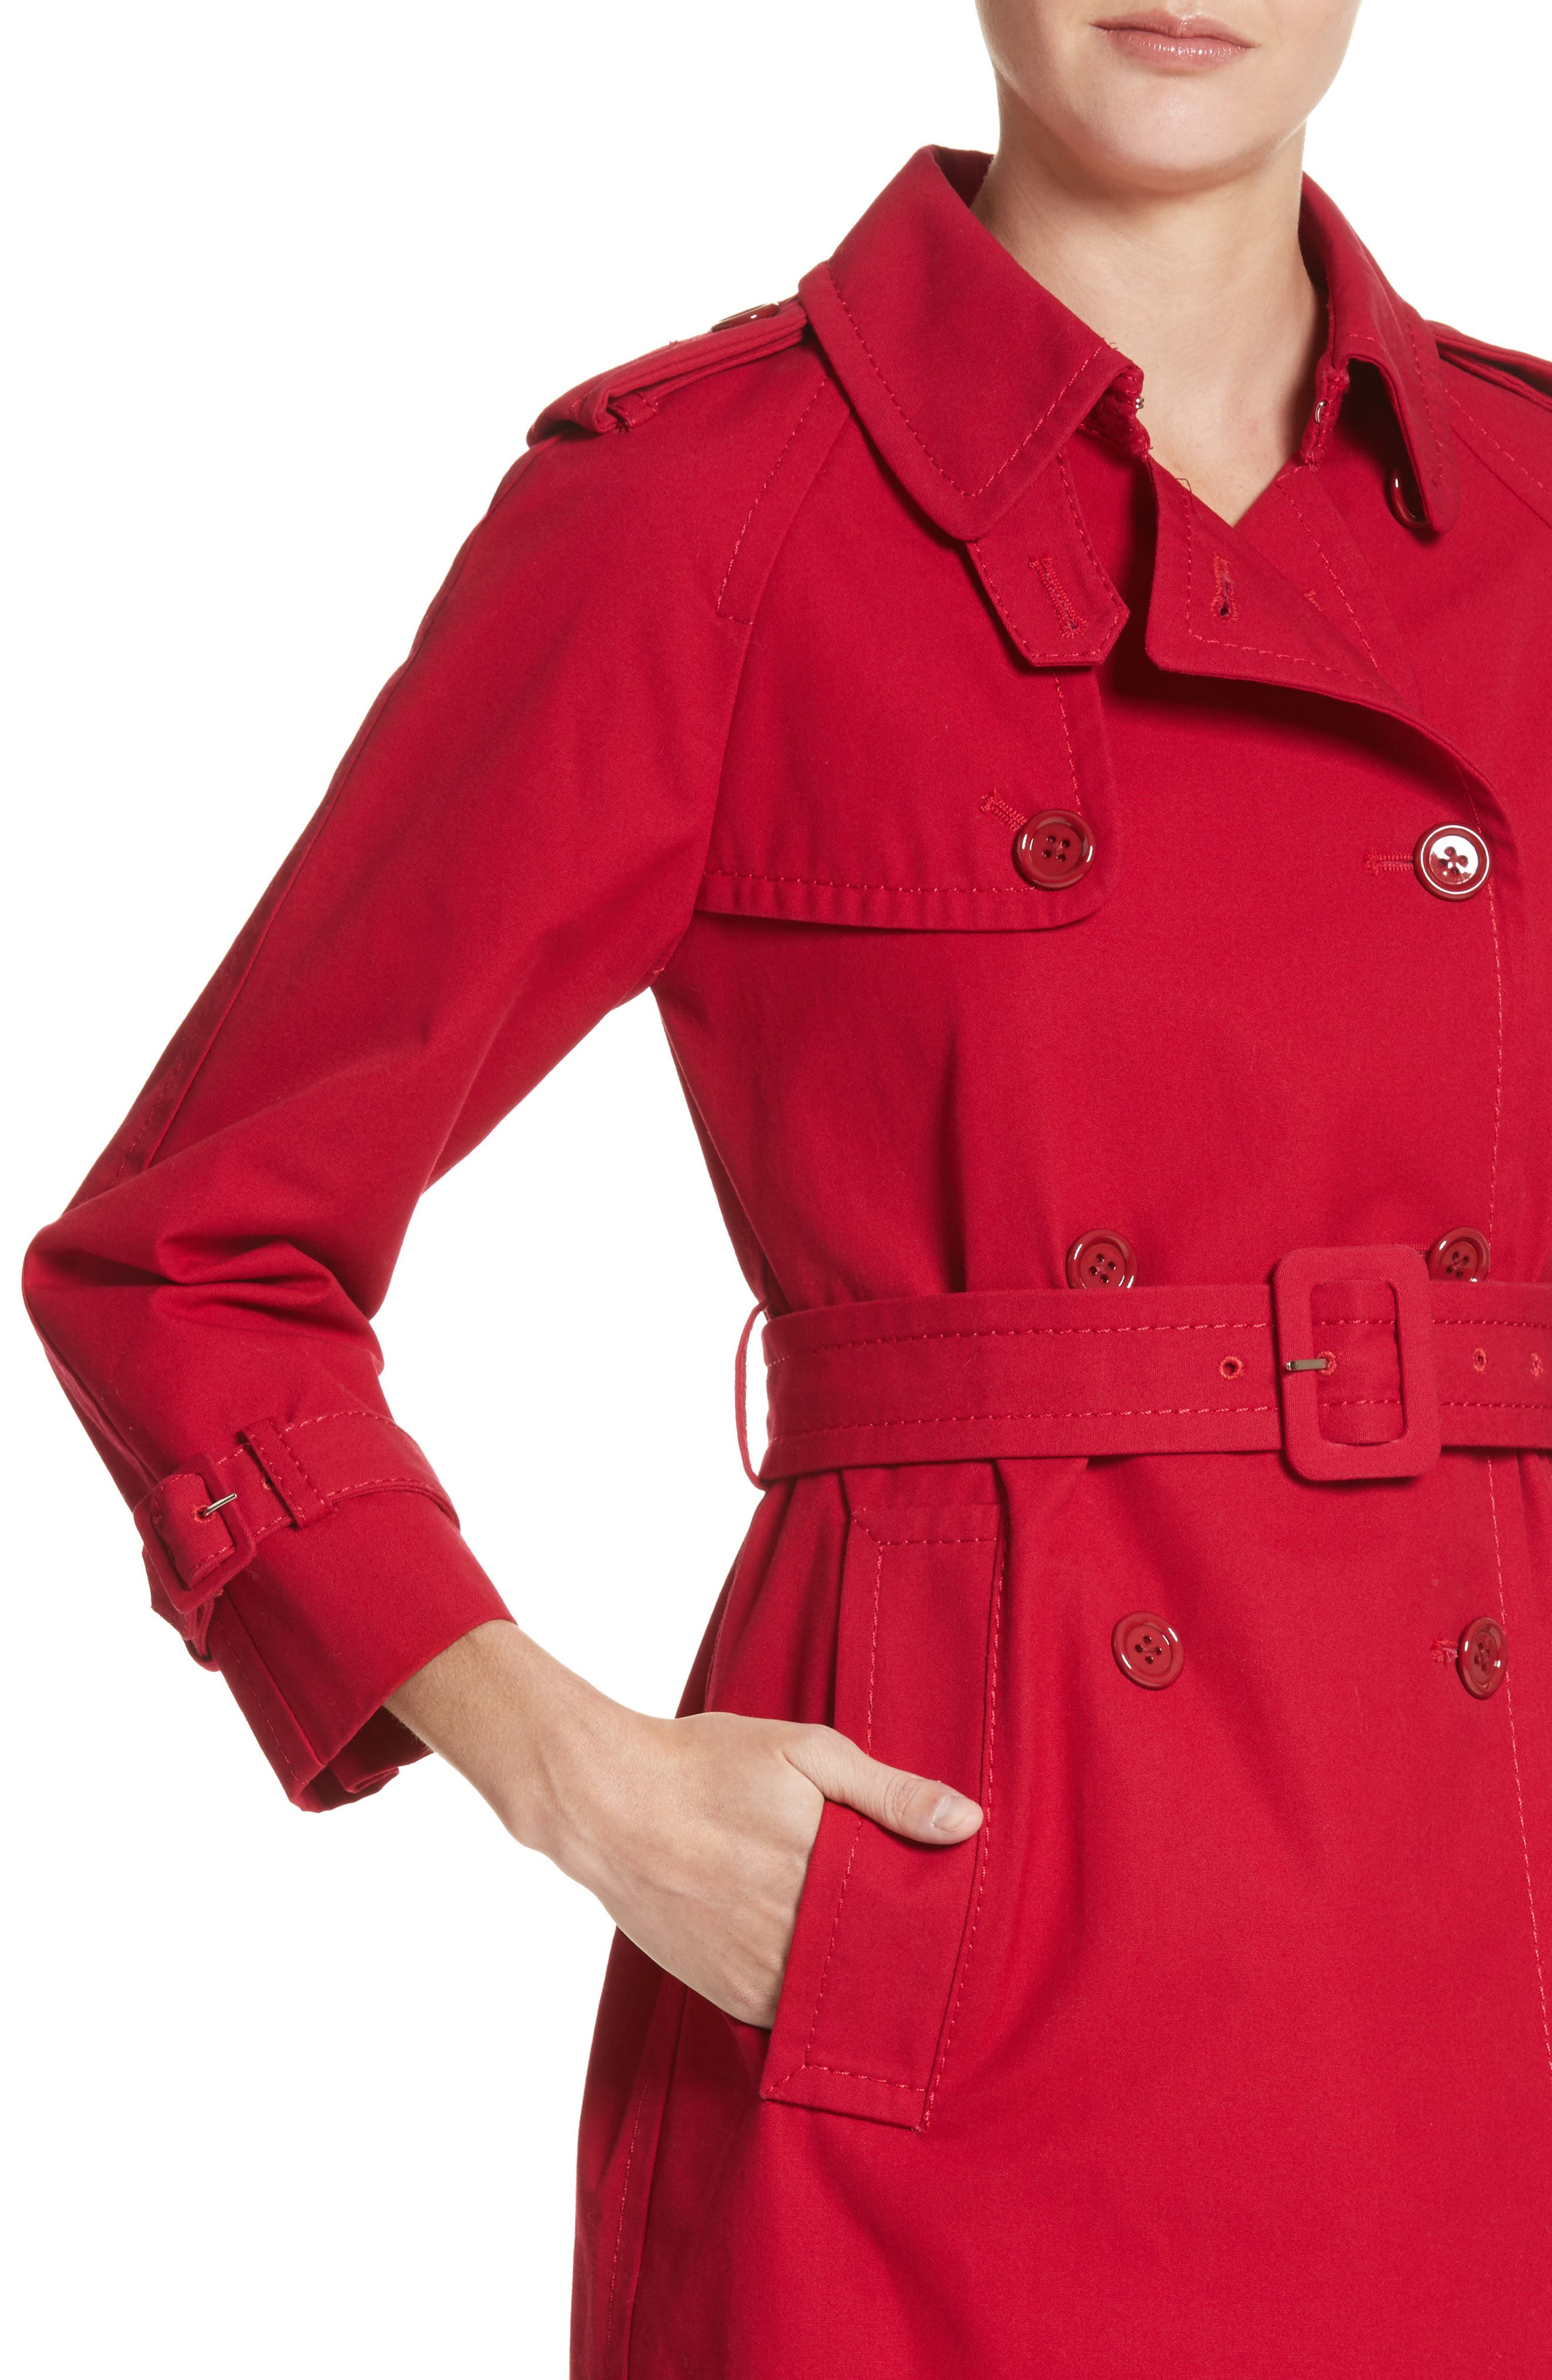 Shrunken Trench Coat,                             Alternate thumbnail 4, color,                             Red